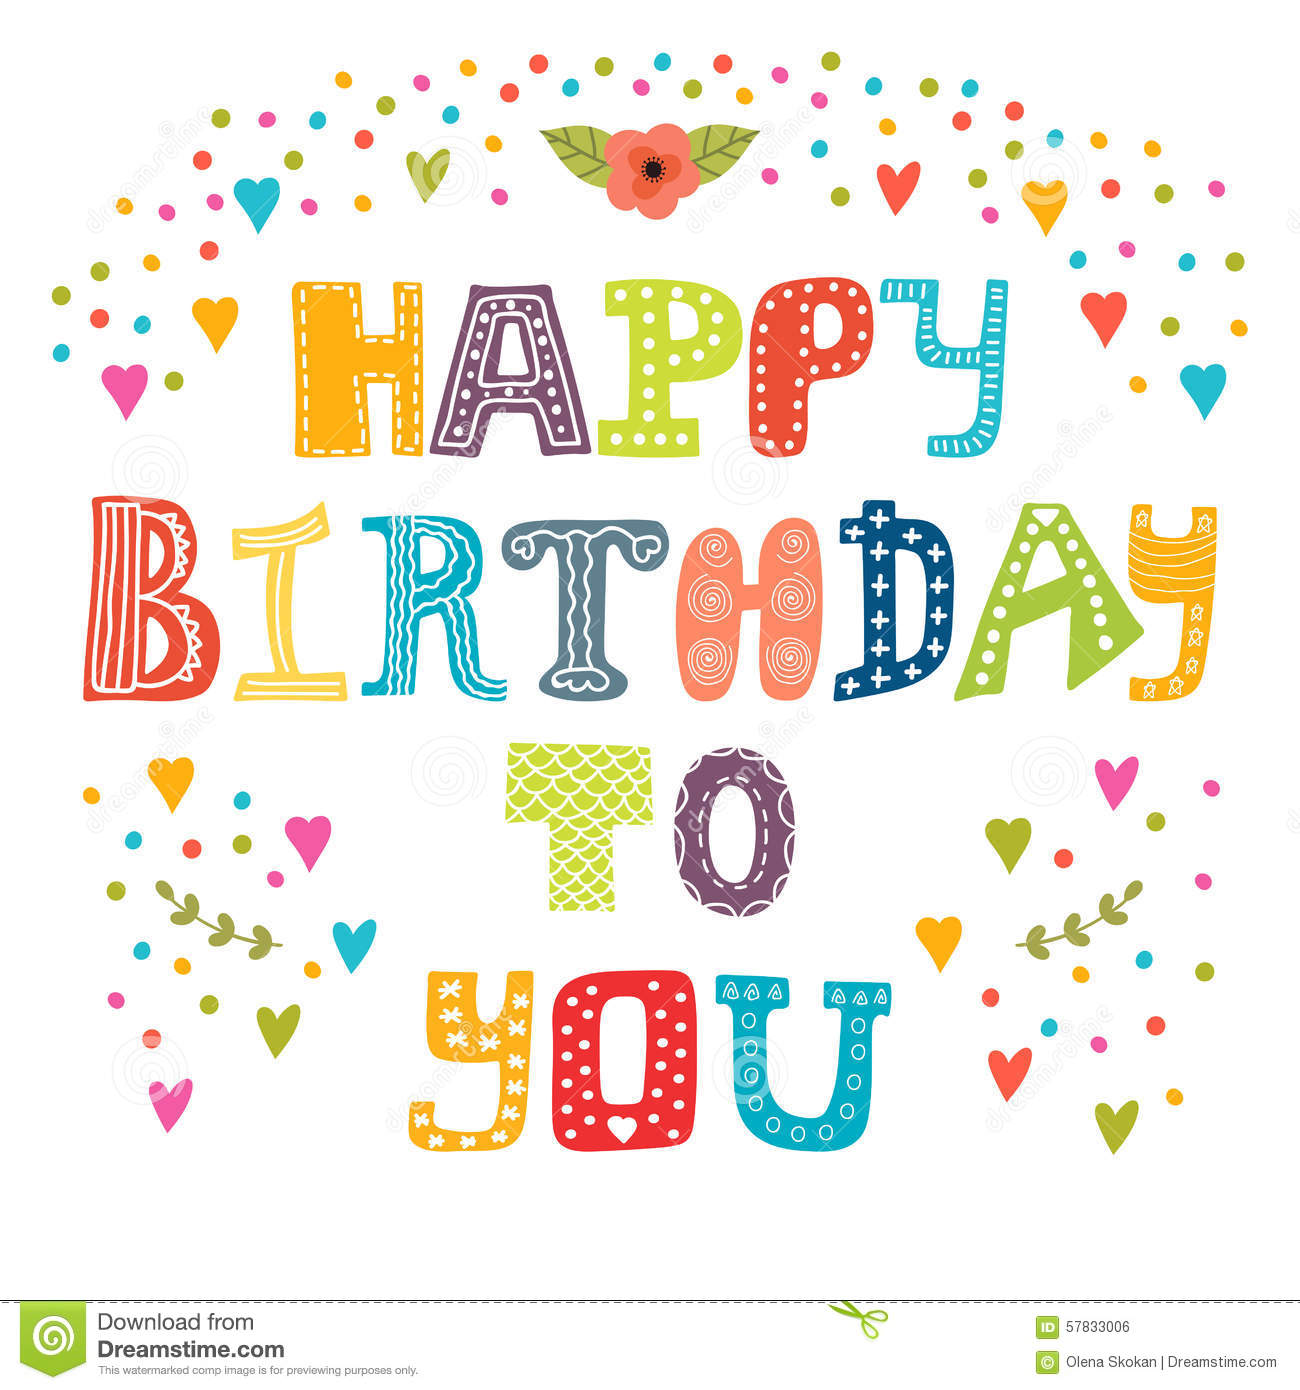 happy birthday to you pic ; happy-birthday-to-you-cute-greeting-card-vector-illustration-57833006